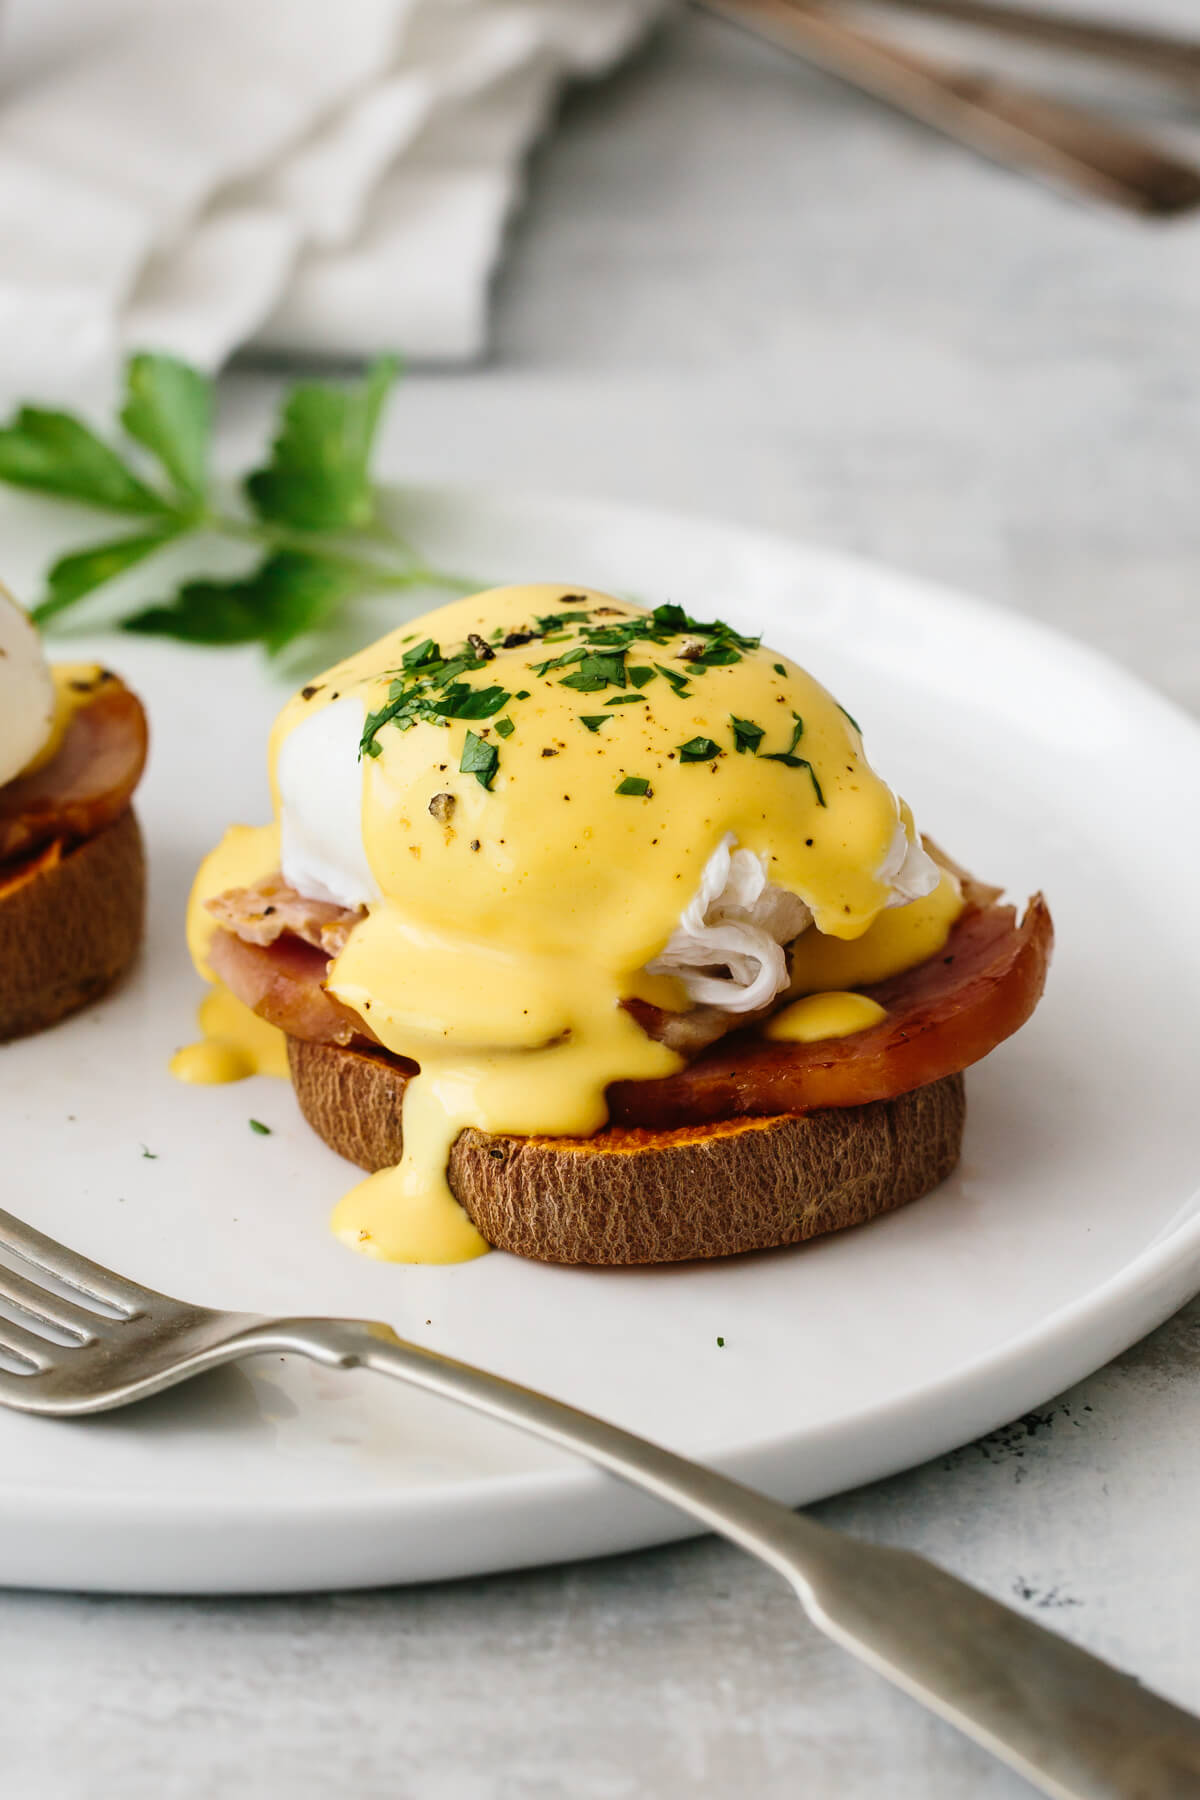 Healthy eggs benedict on a plate.